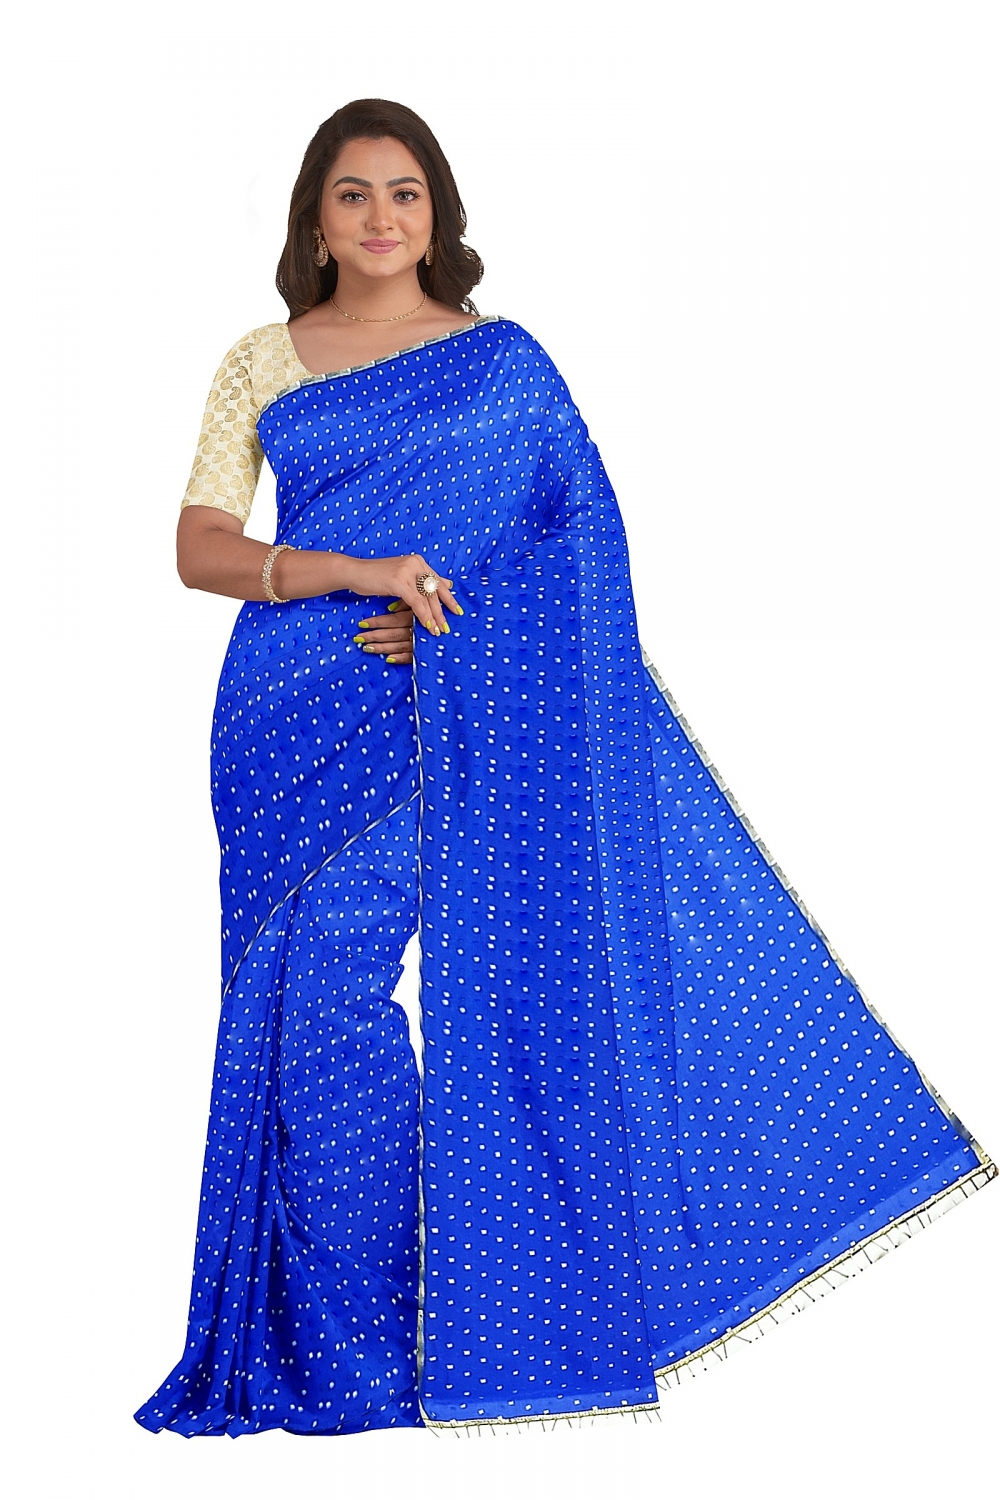 Blue Starred Sari with Shining Blouse